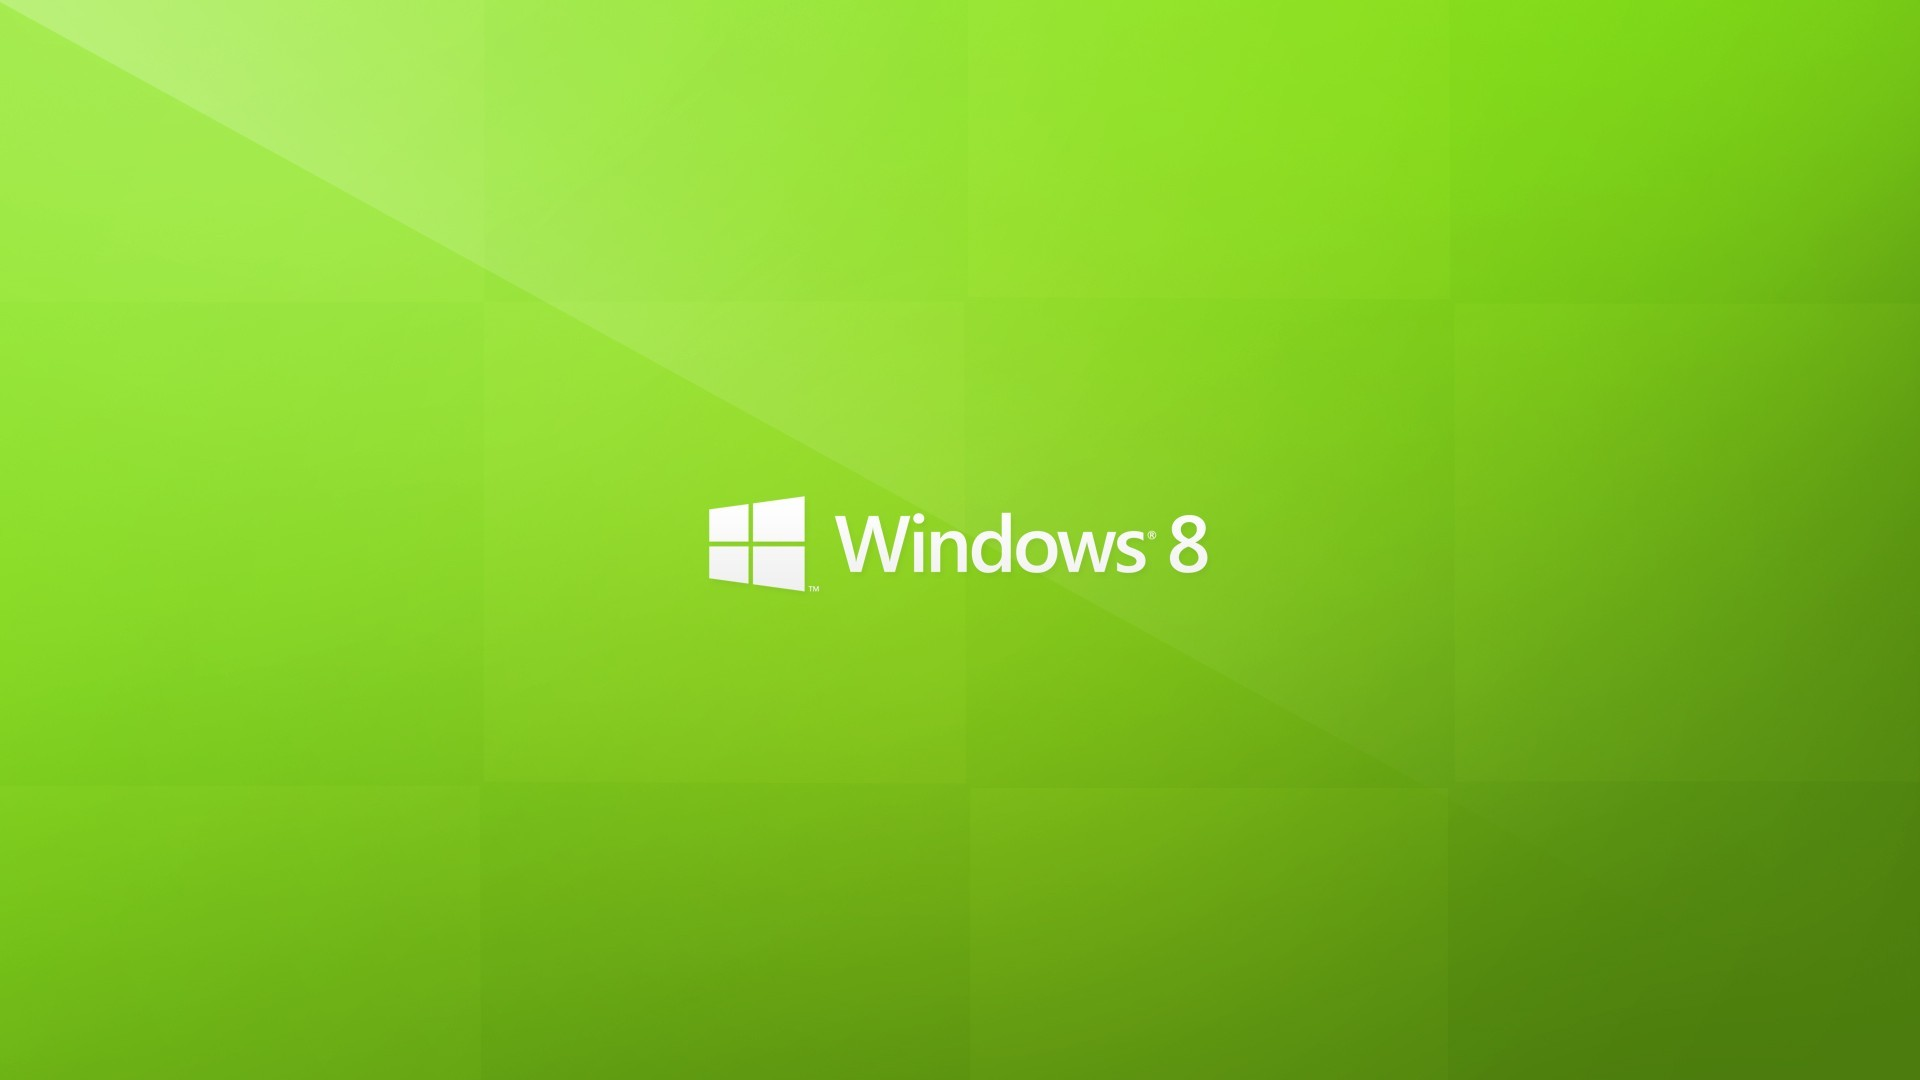 hd windows logo wallpapers (59+ images)